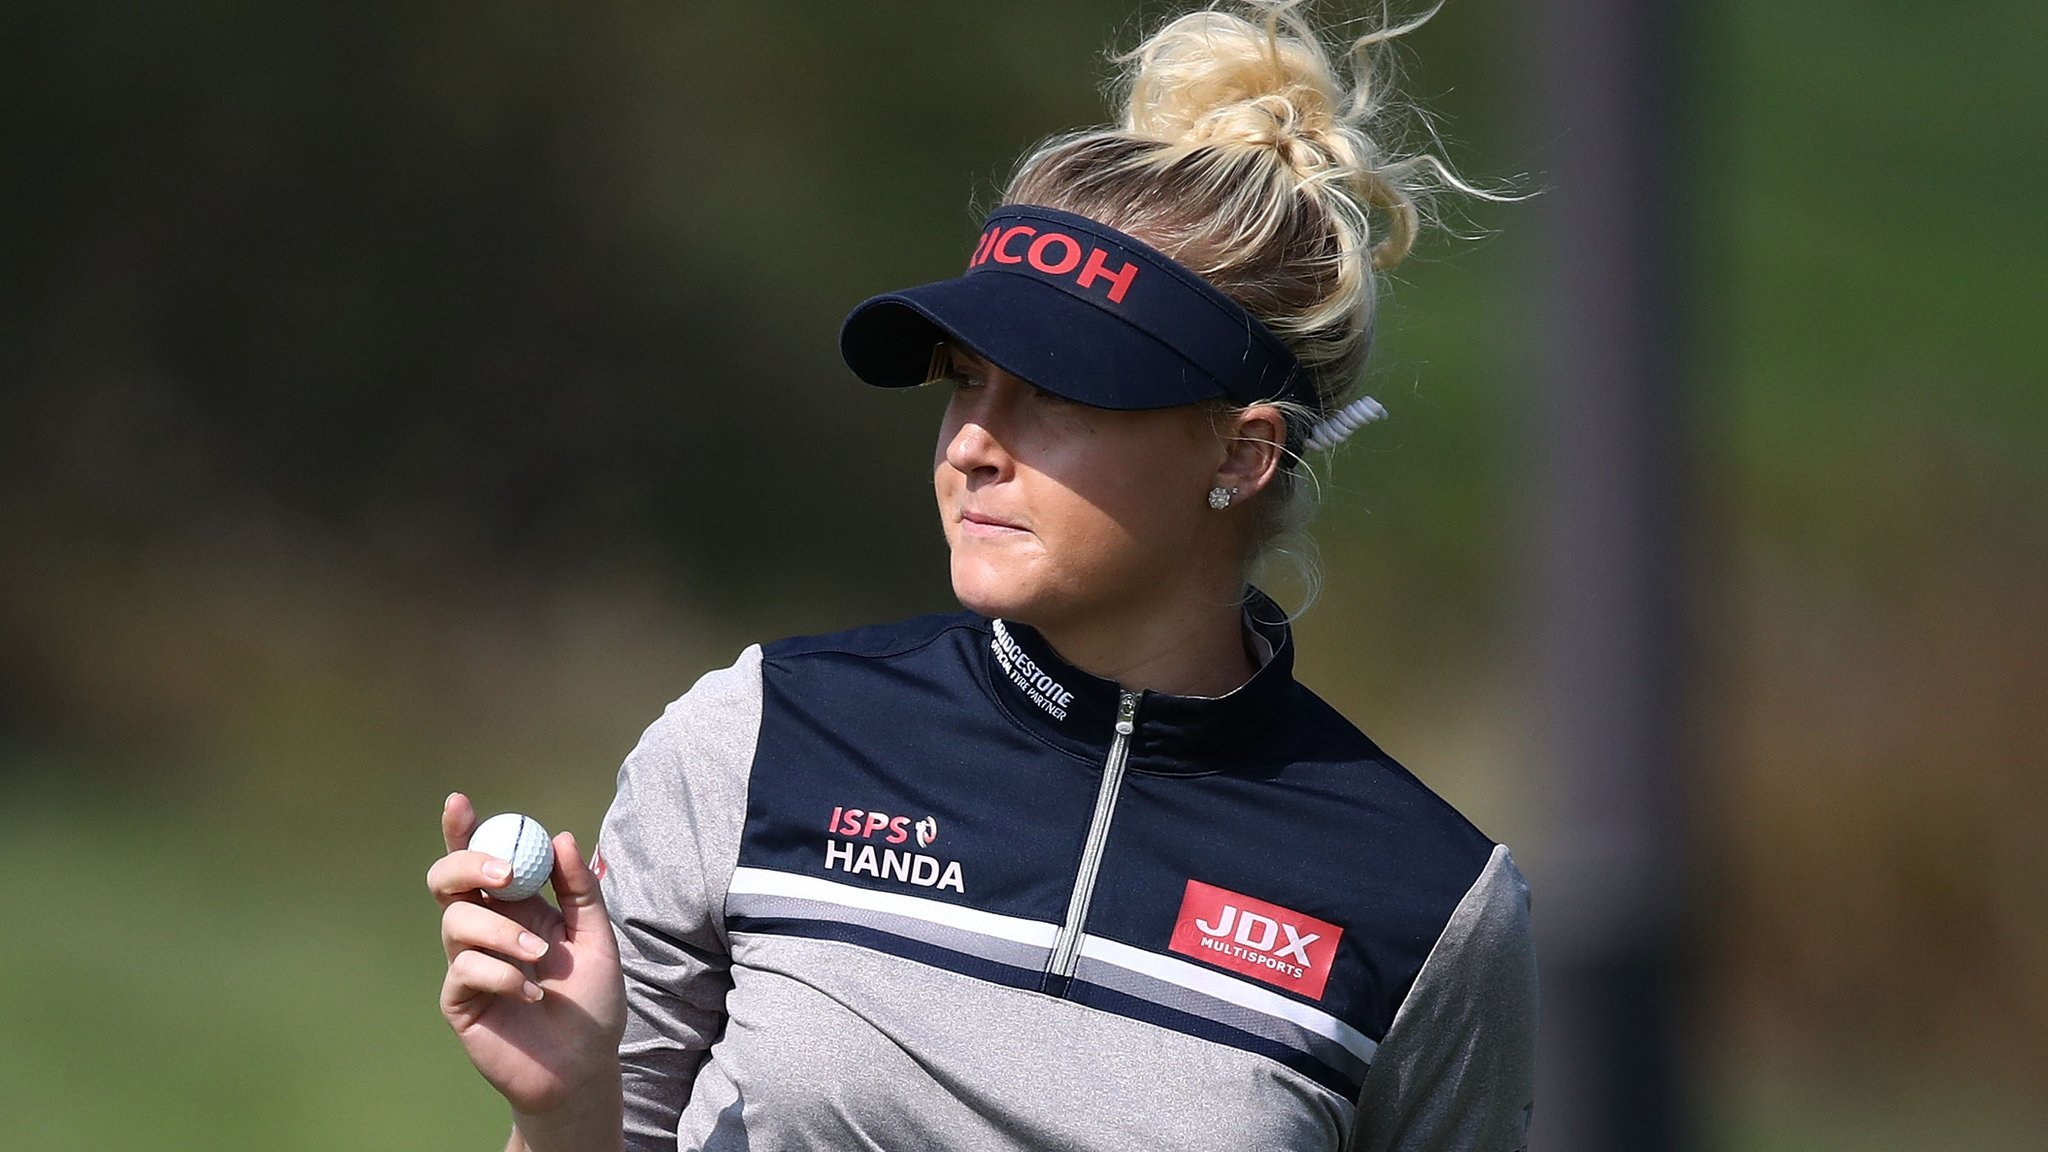 Charley Hull second at KEB Hana Bank Championship behind Chun In-gee